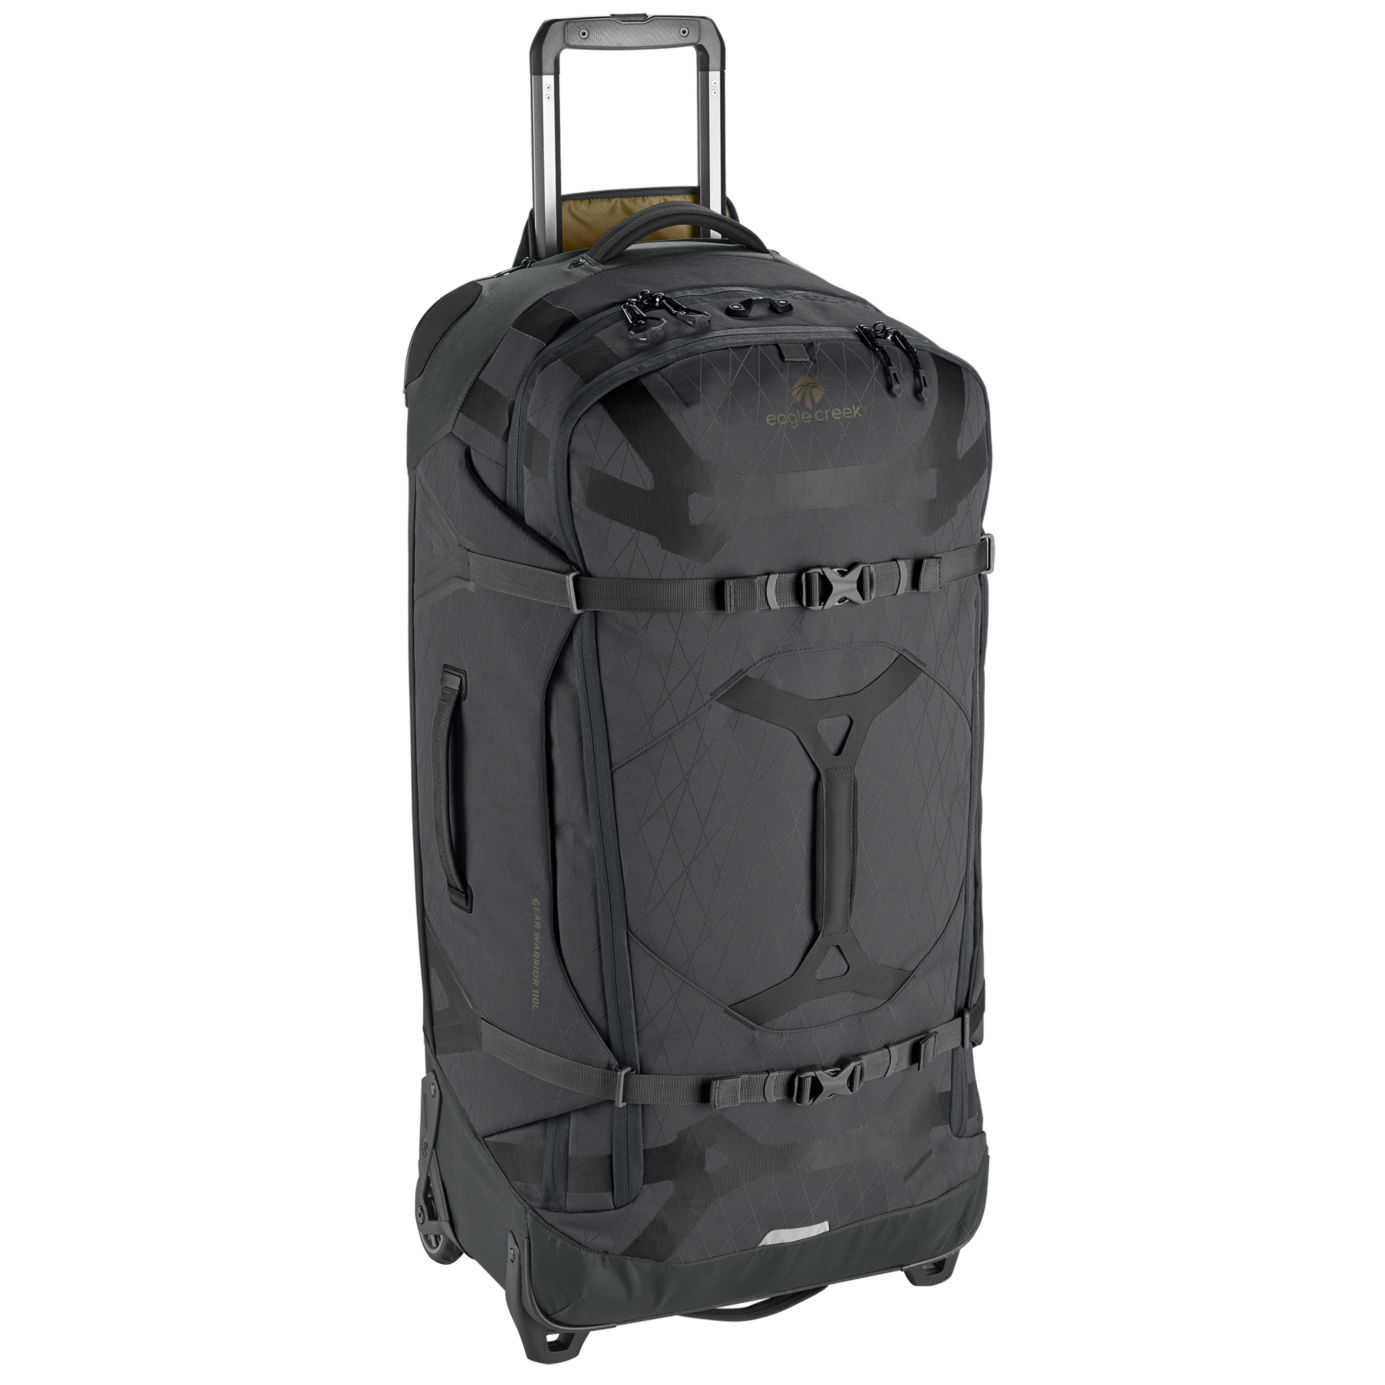 Gear Warrior Wheeled Duffel 110L / 34in